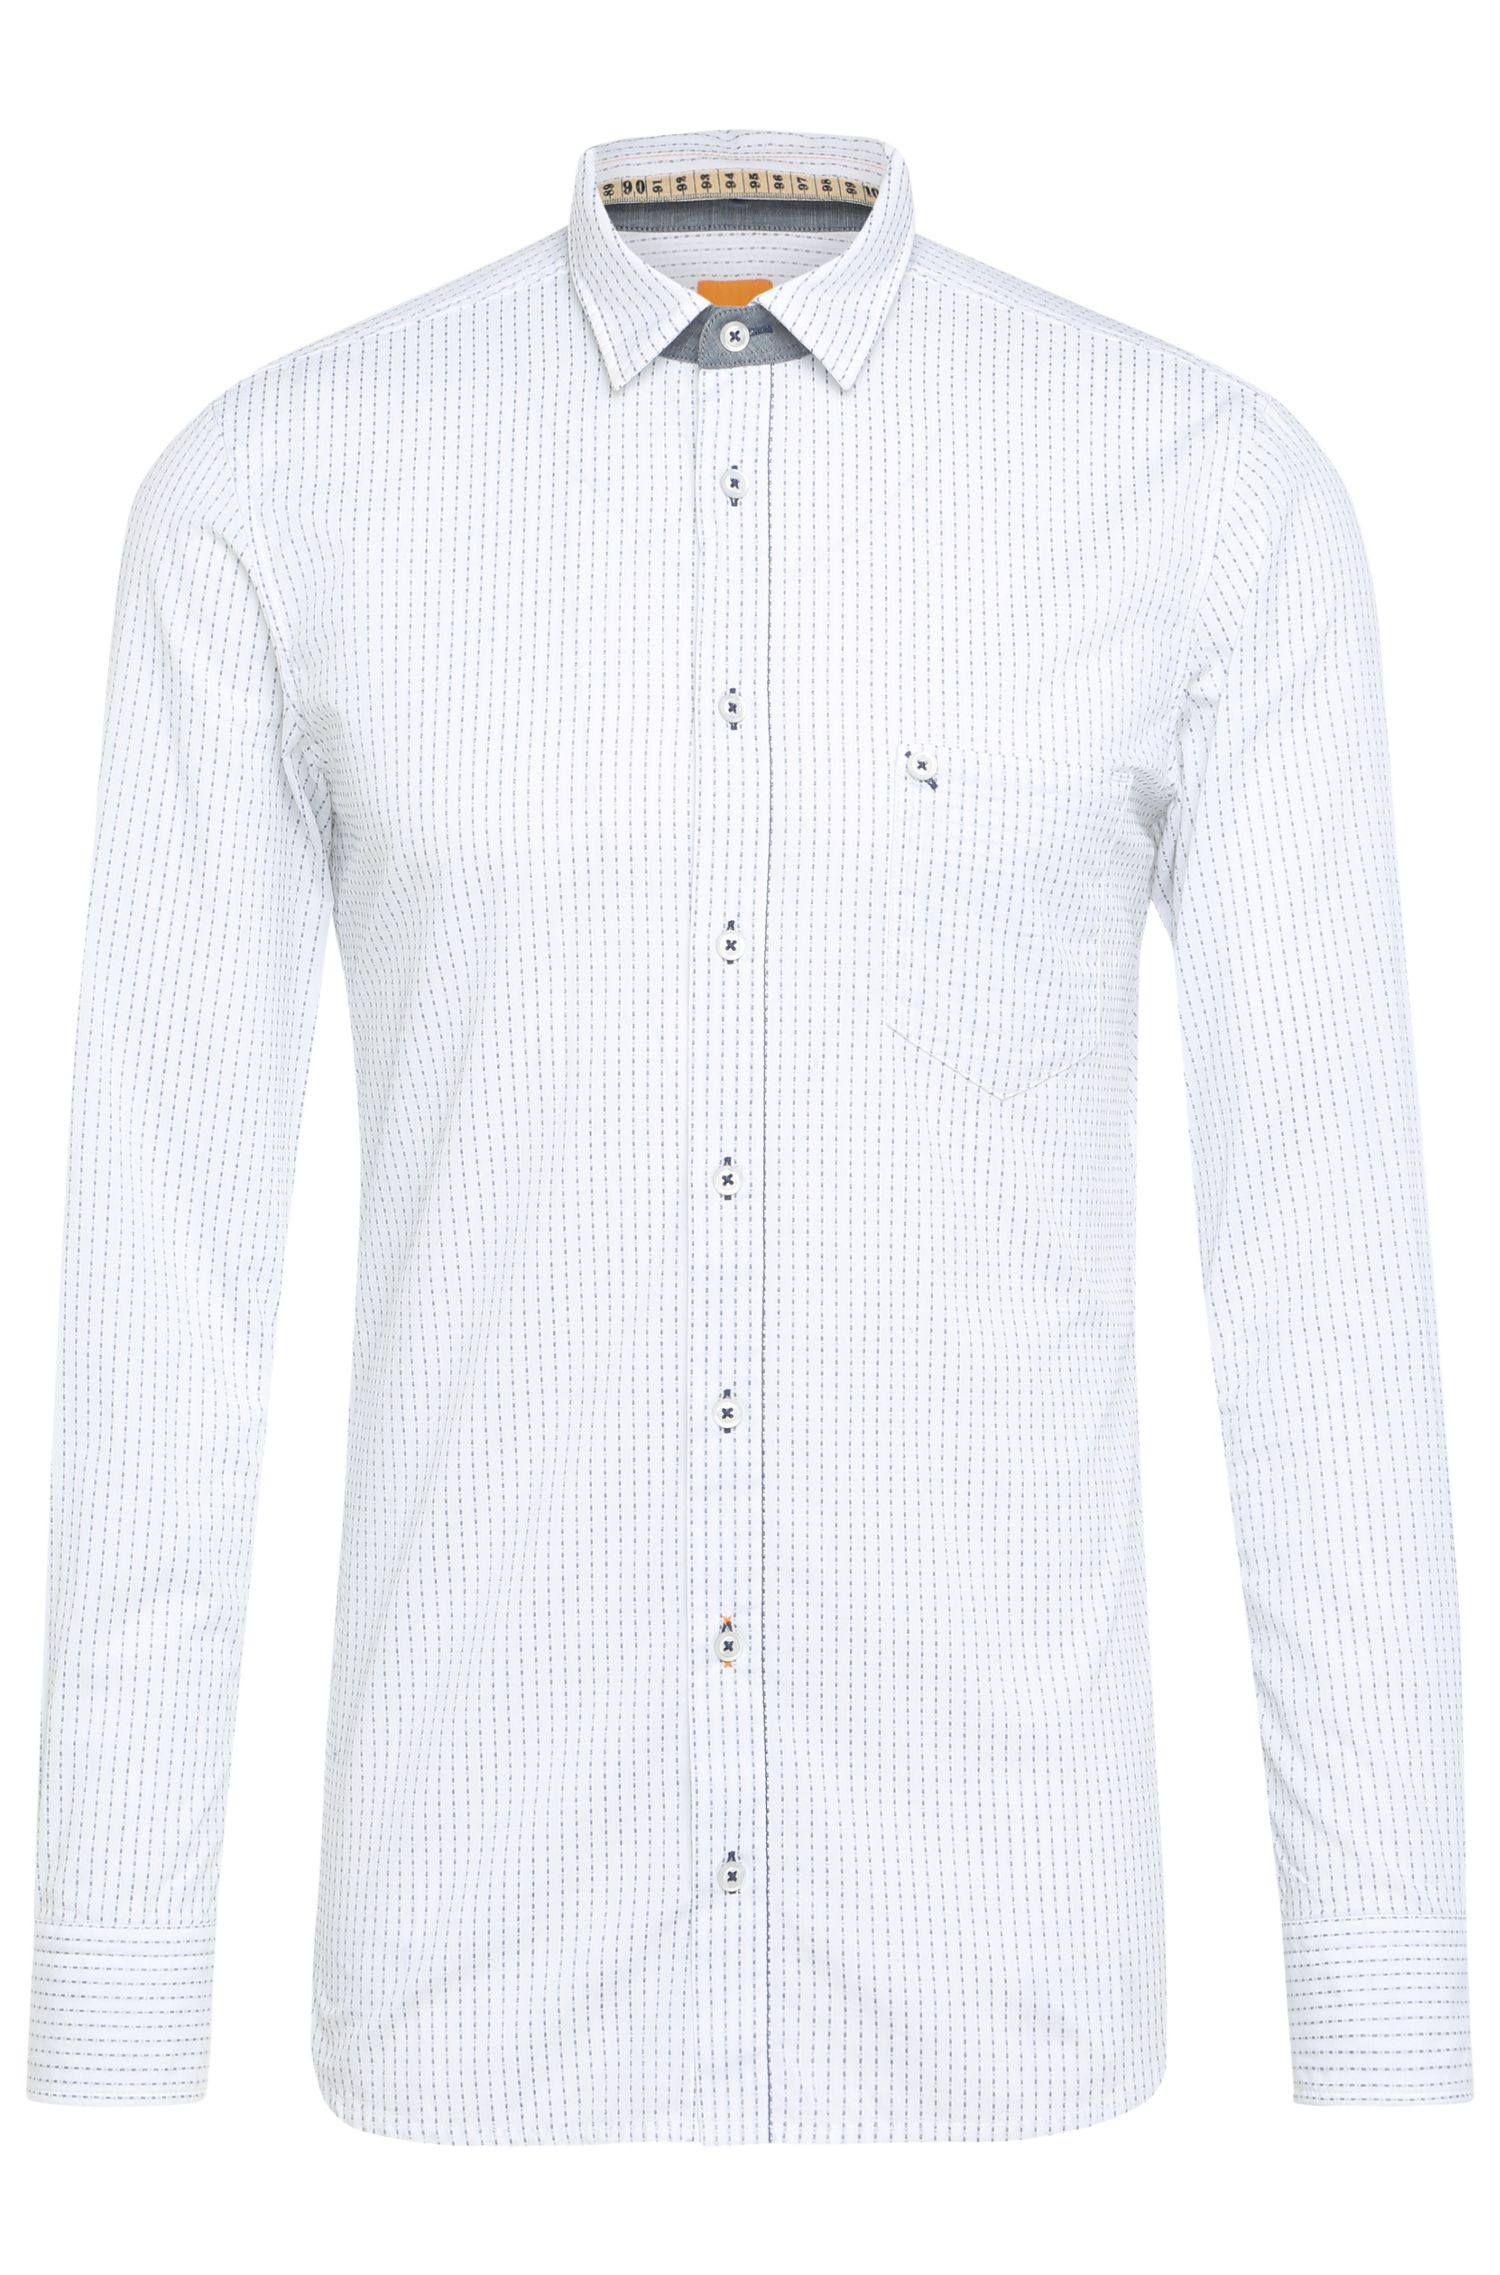 'EdeepE' | Regular Fit, Striped Cotton Button Down Shirt